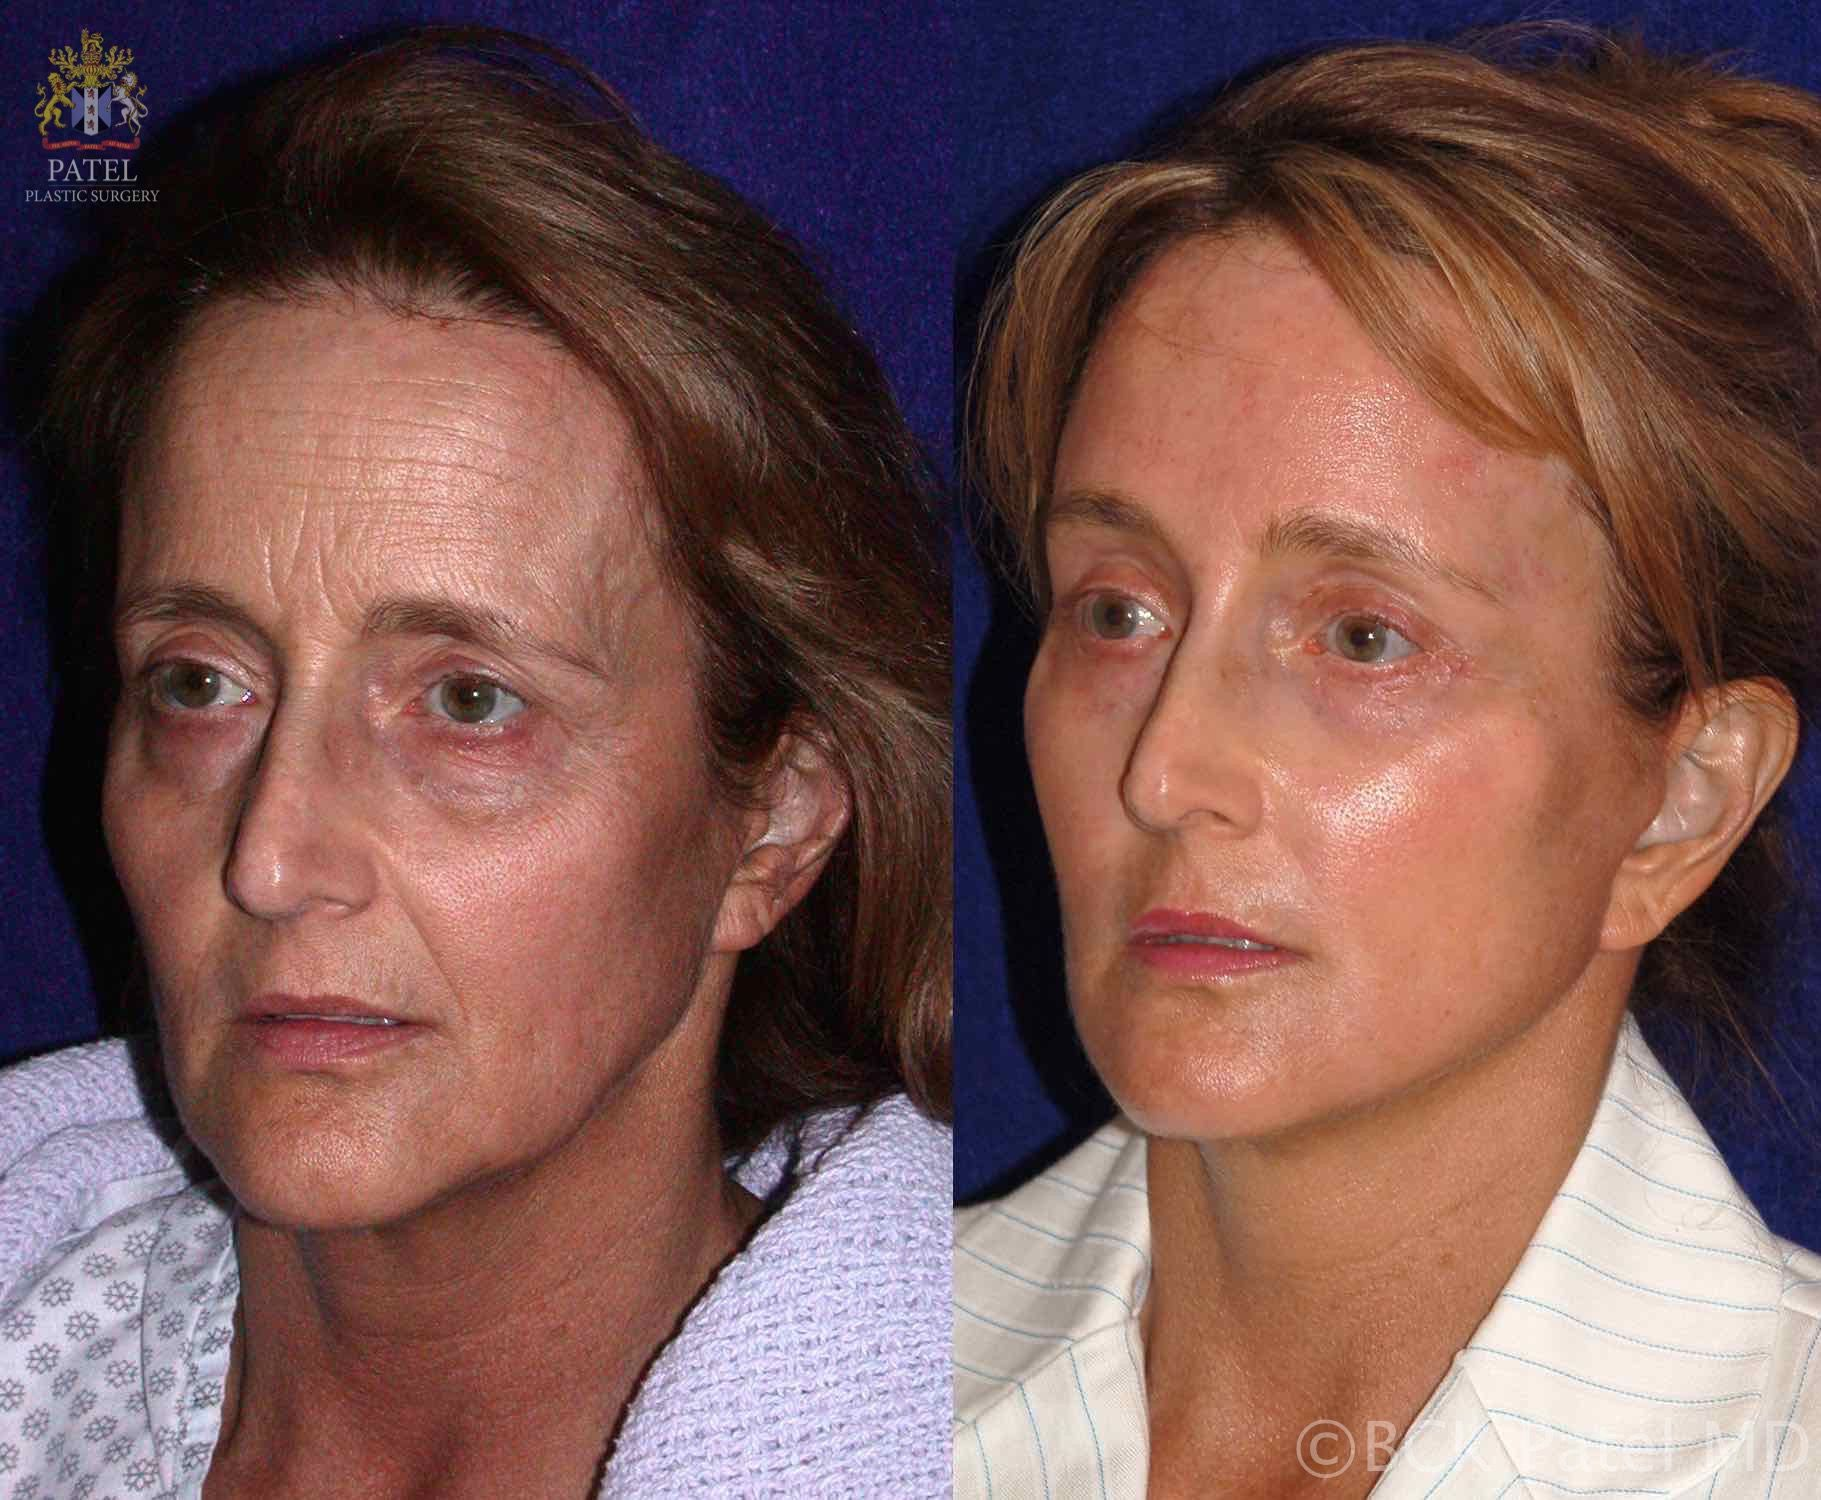 englishsurgeon.com. Beautiful improvement in the face skinin terms of wrinkles and lines after using the fractionated CO2 laser. BCK Patel MD, FRCS, London, Salt Lake City St George